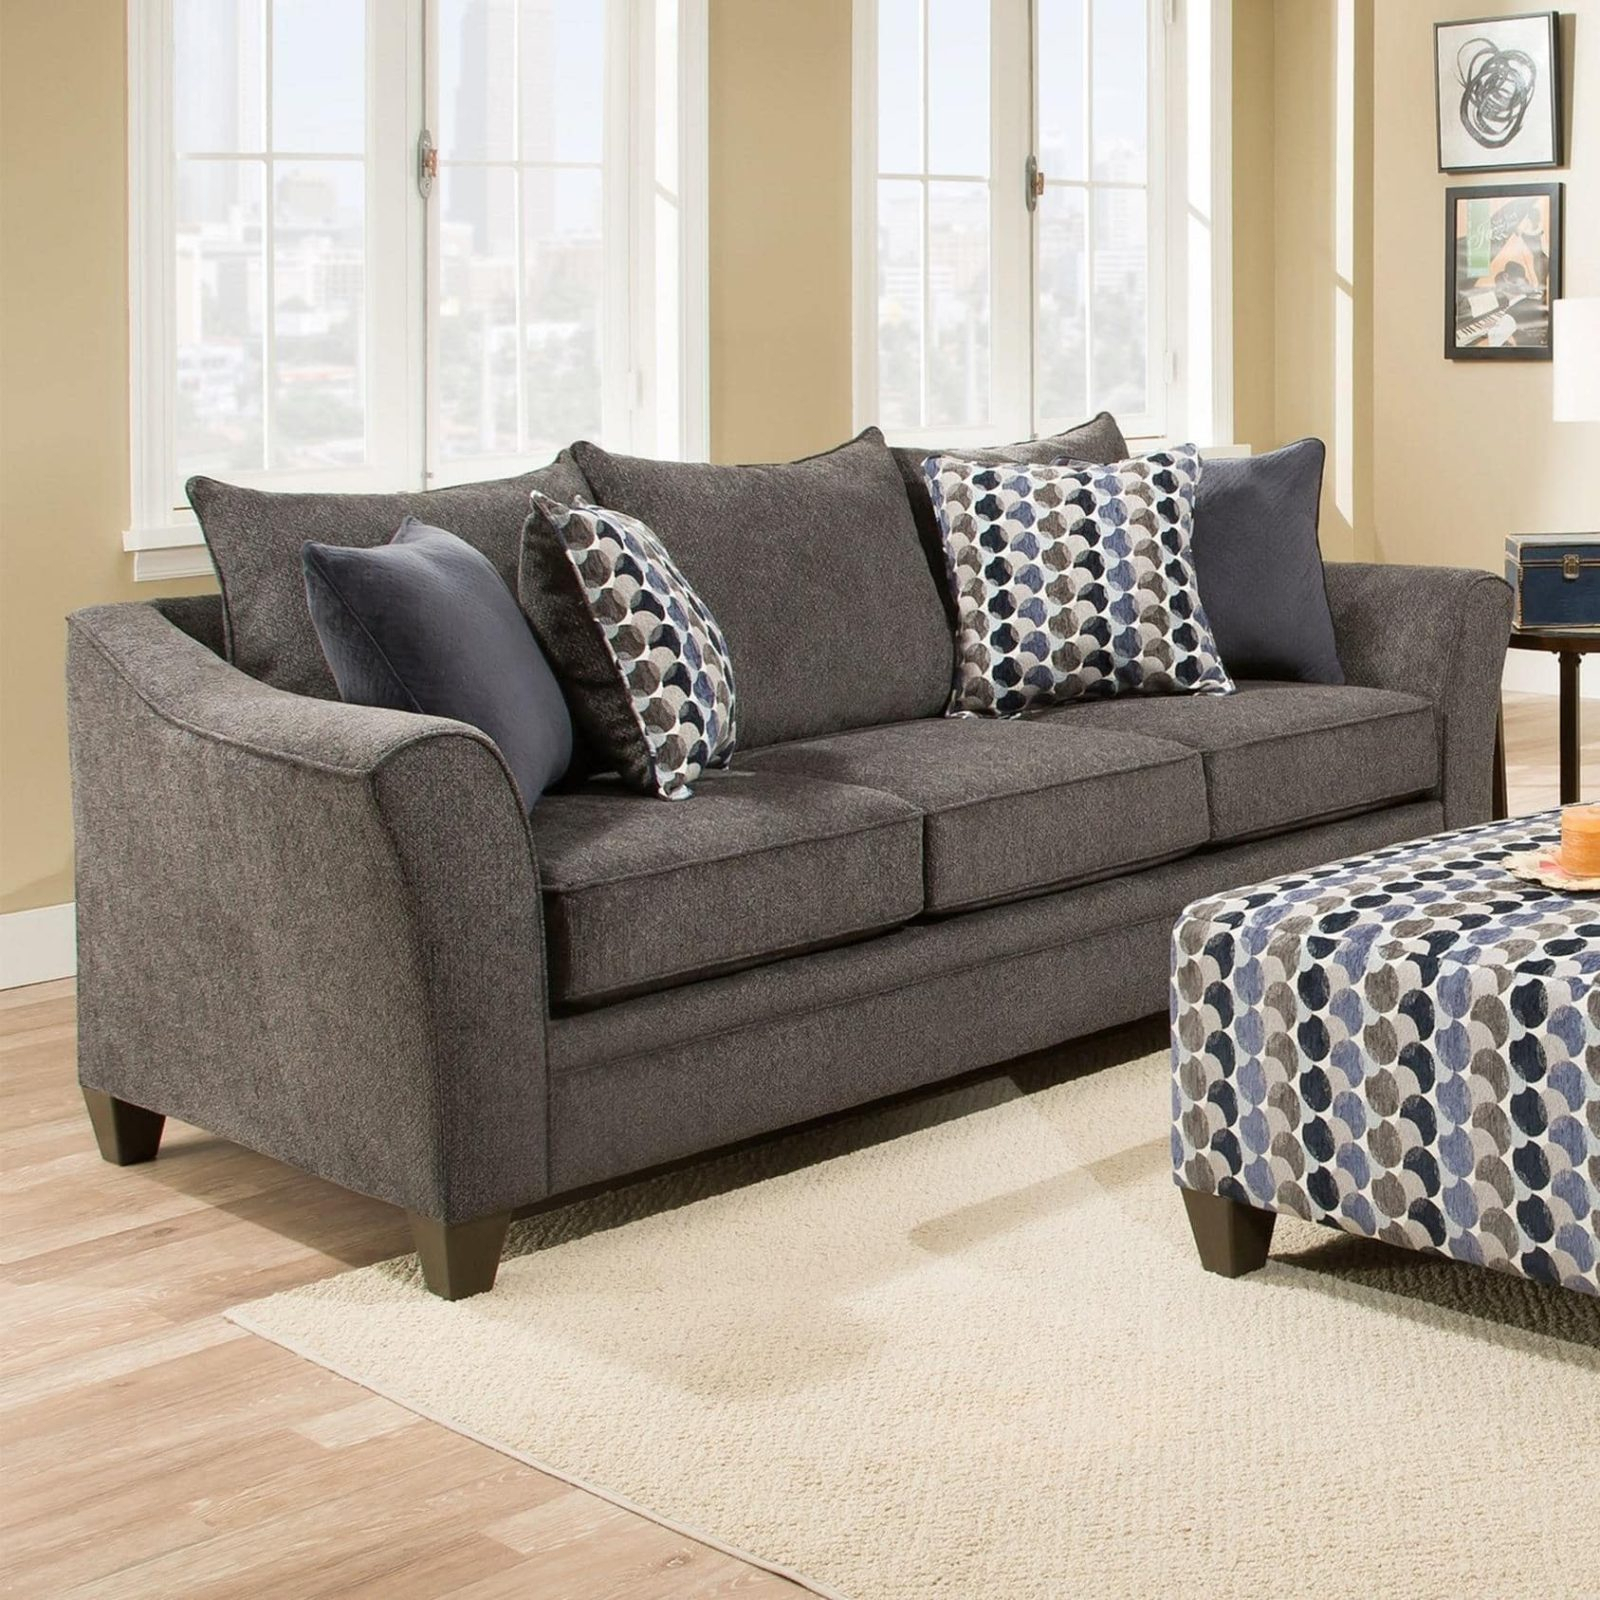 Aidan Sofa – Furniture & More Within Aidan Ii Sofa Chairs (Image 10 of 20)